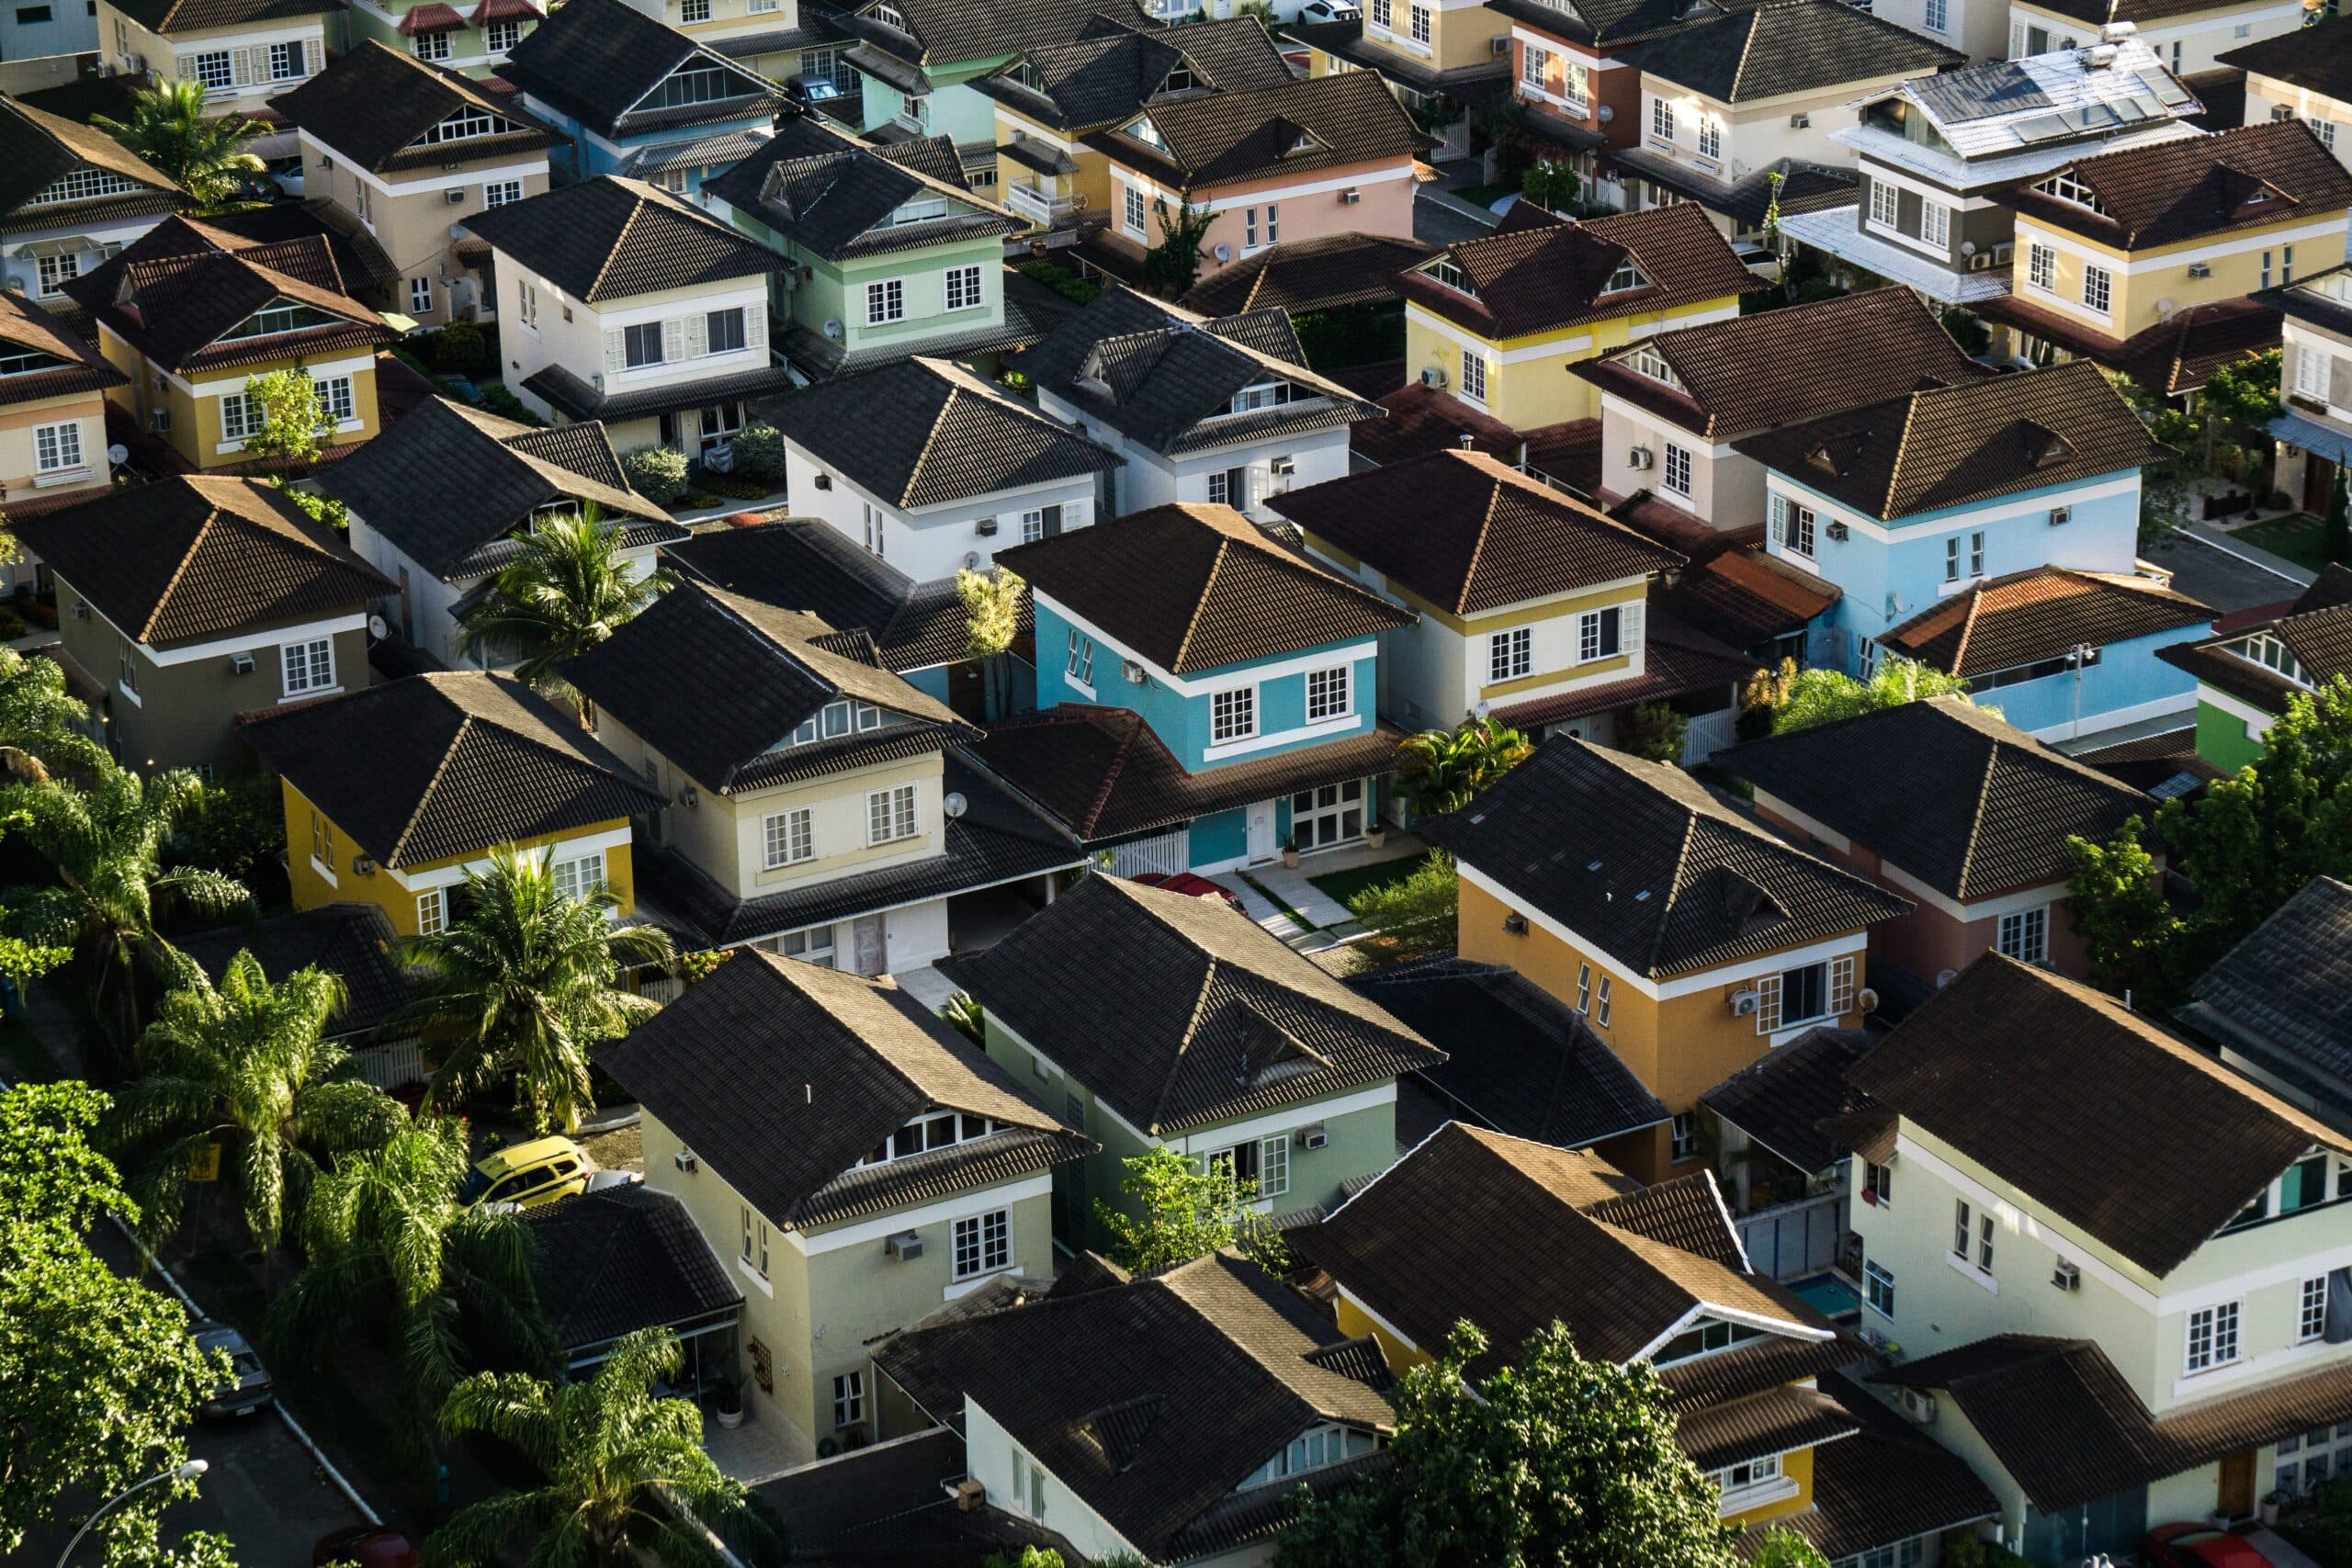 airial view of housing Canaian Housing Market Strong